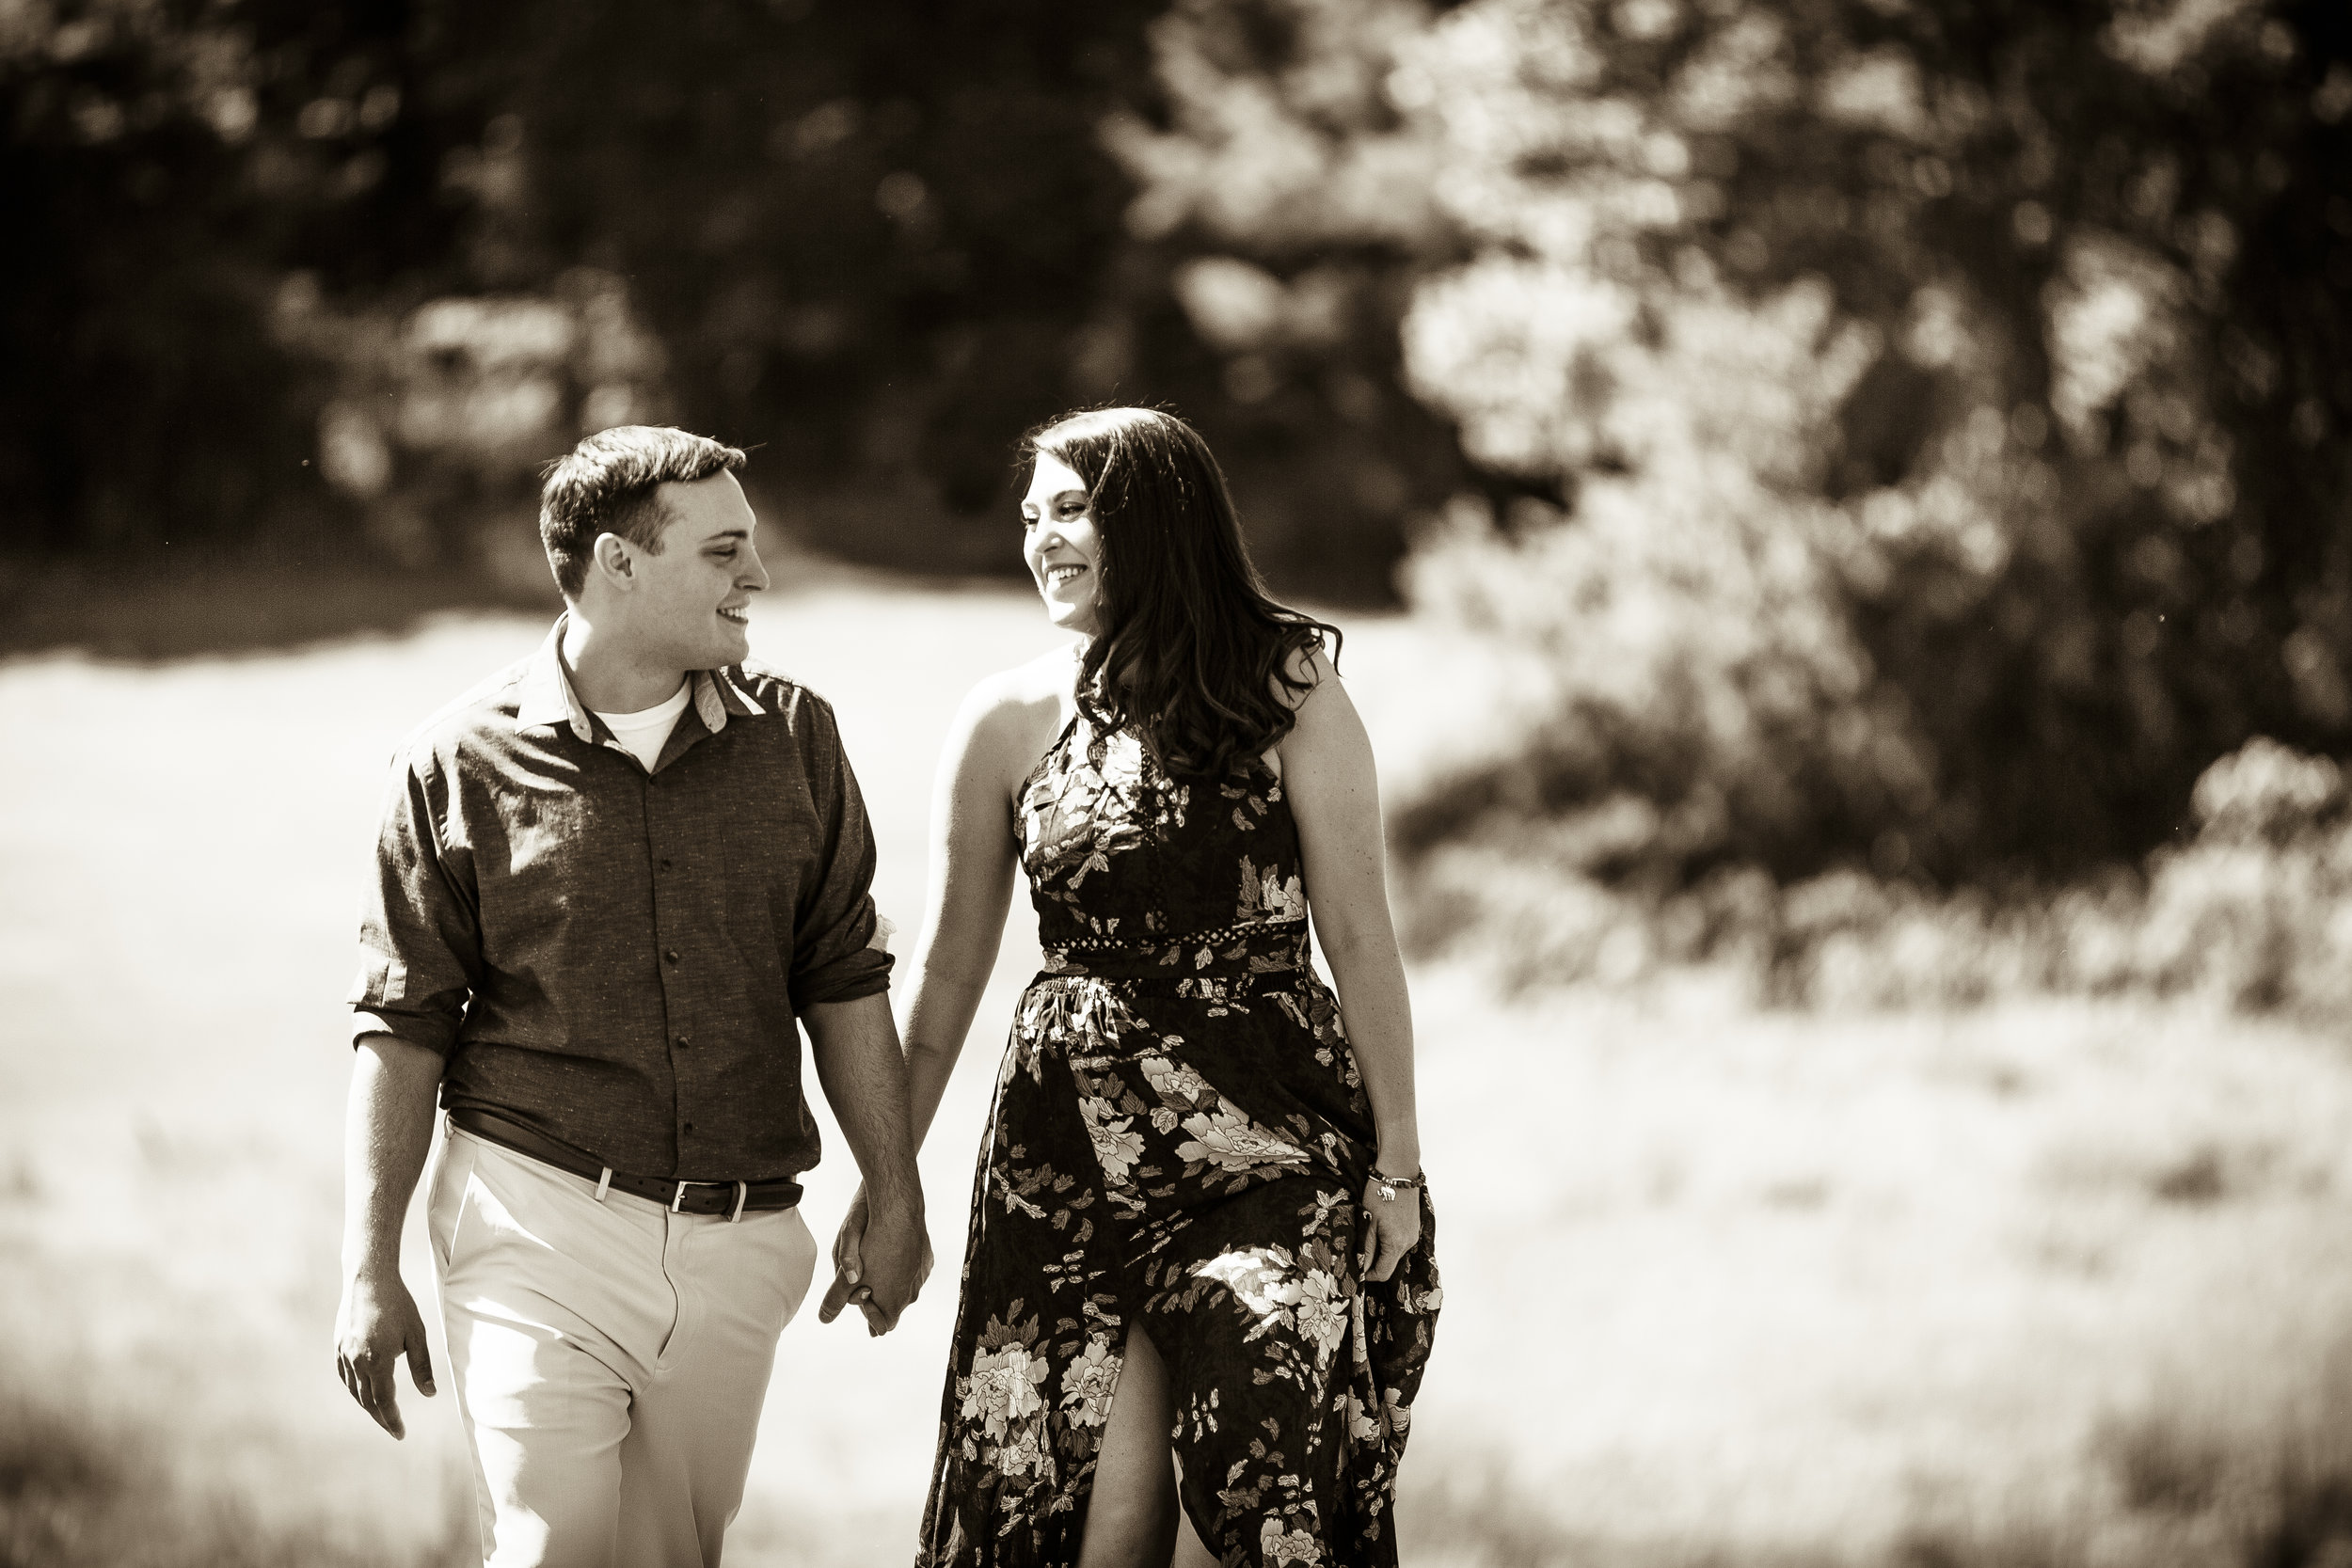 8C2A0812+Giovanni The Photographer+Best Boston Engagement Photography+Borderland State Park in Easton MA.jpg